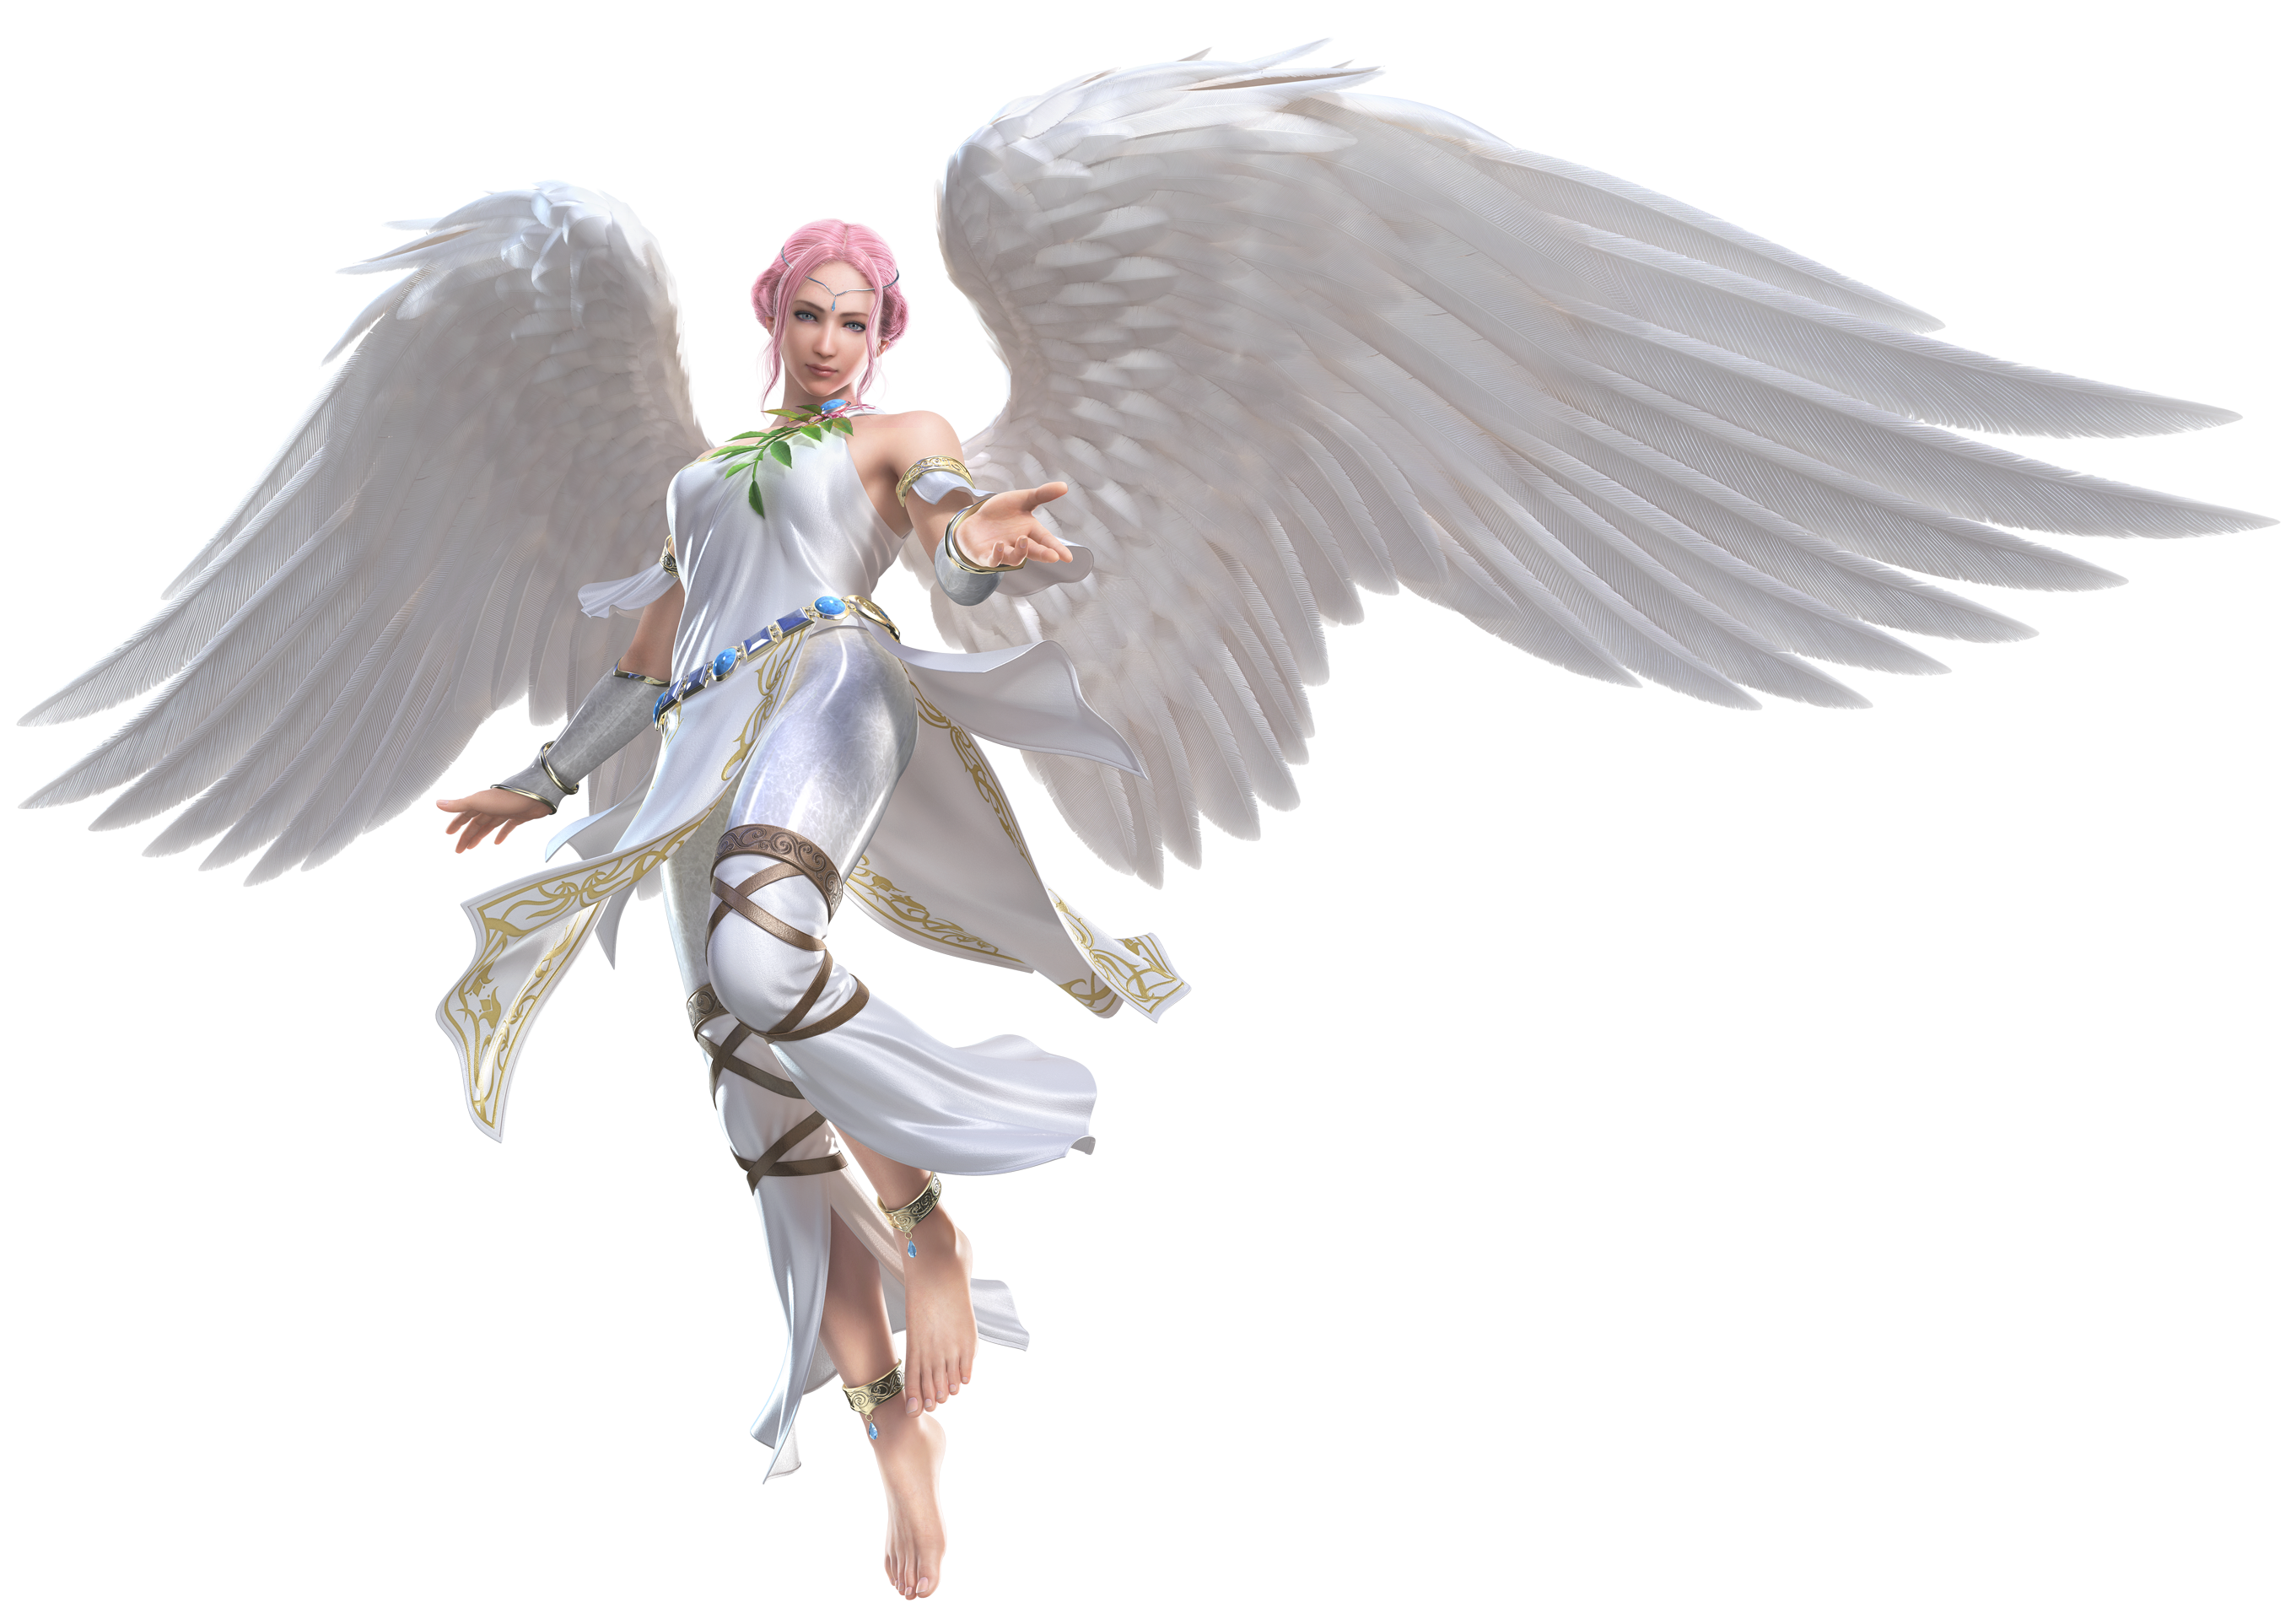 Angel png images. Large clipart gallery yopriceville